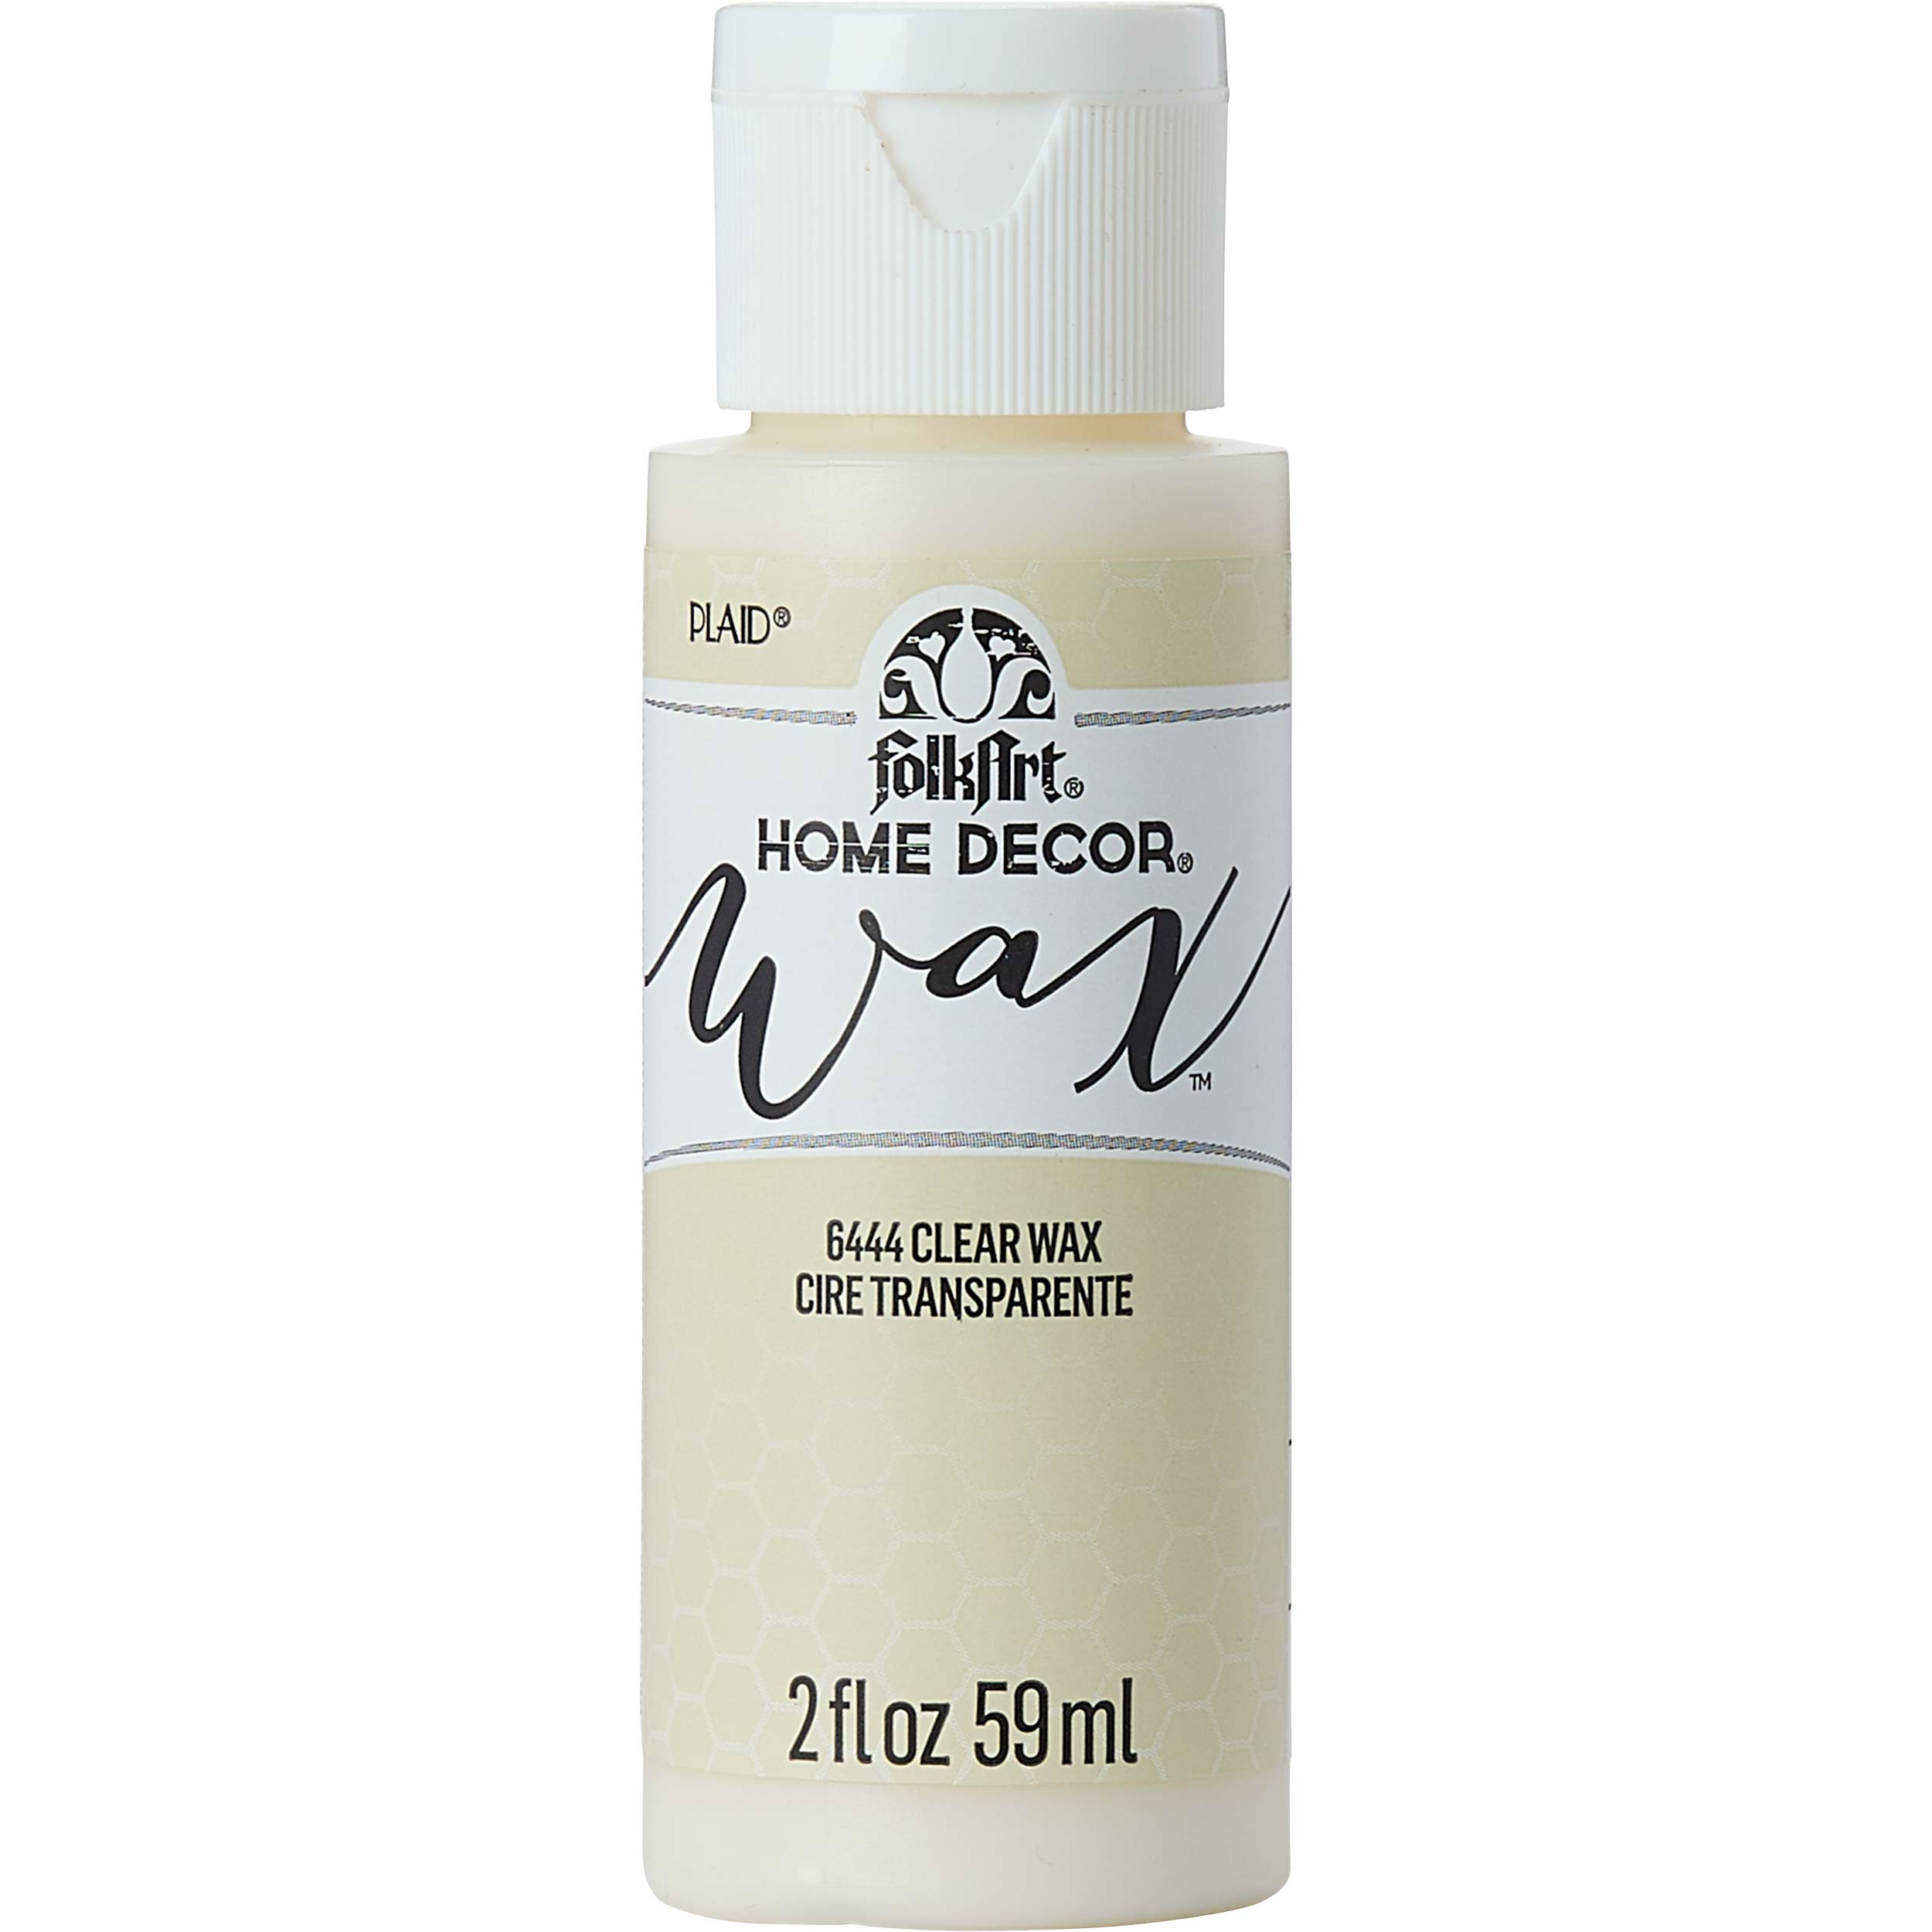 FolkArt ® Home Decor™ Wax - Clear, 2 oz. - 6444